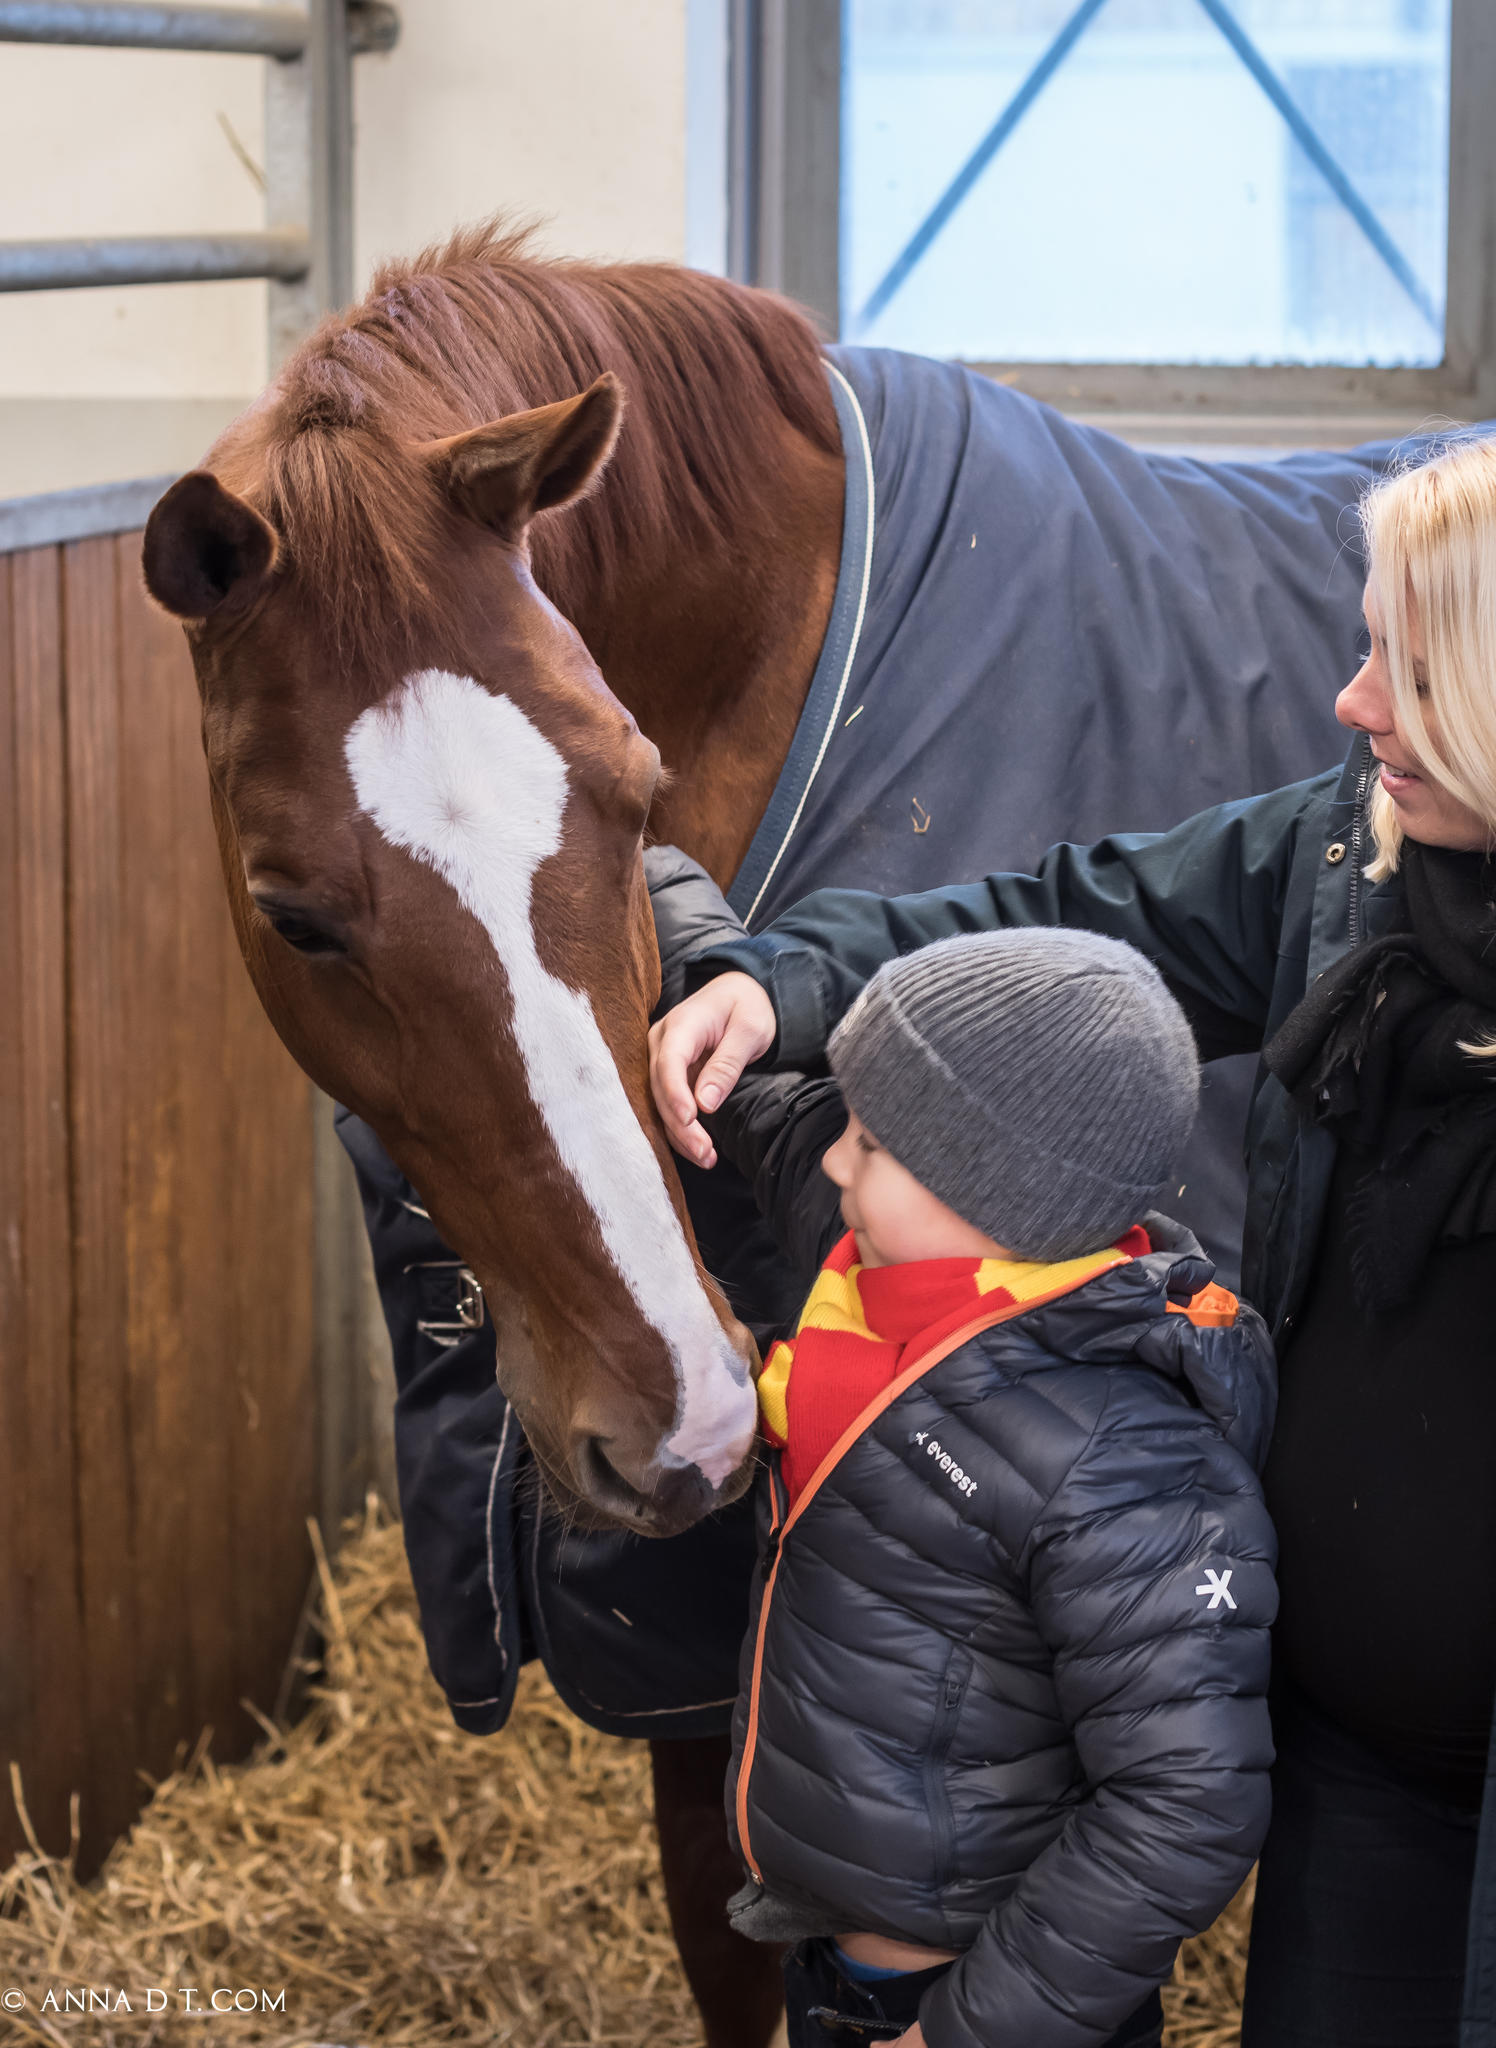 Magical Connection Between Horses and Kids